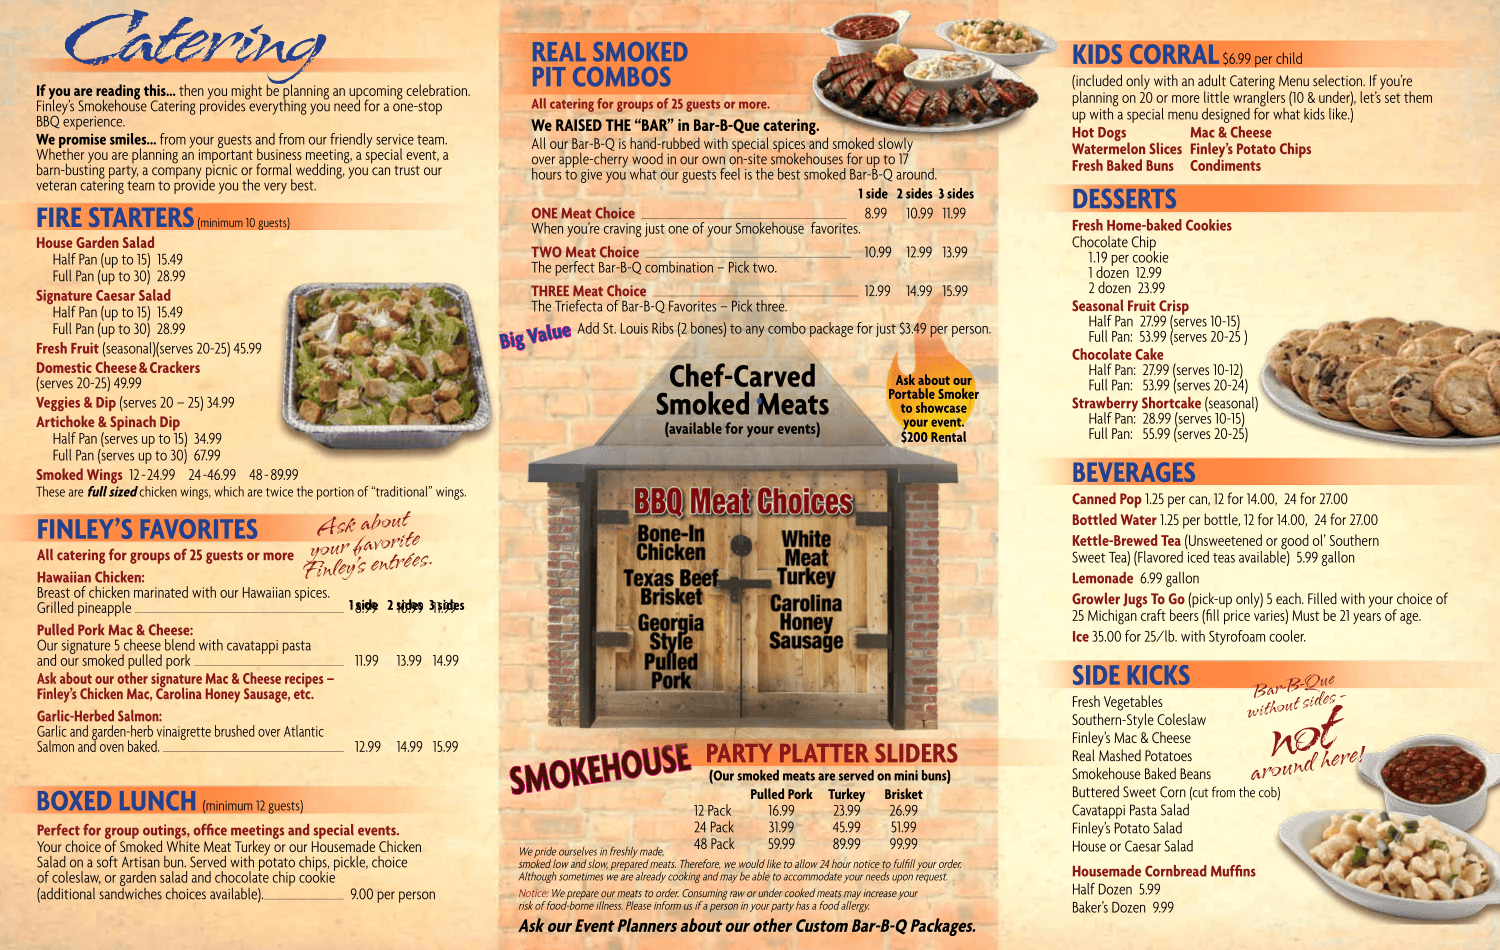 Smokehouse Catering Menu Finleys Grill and Smokehouse